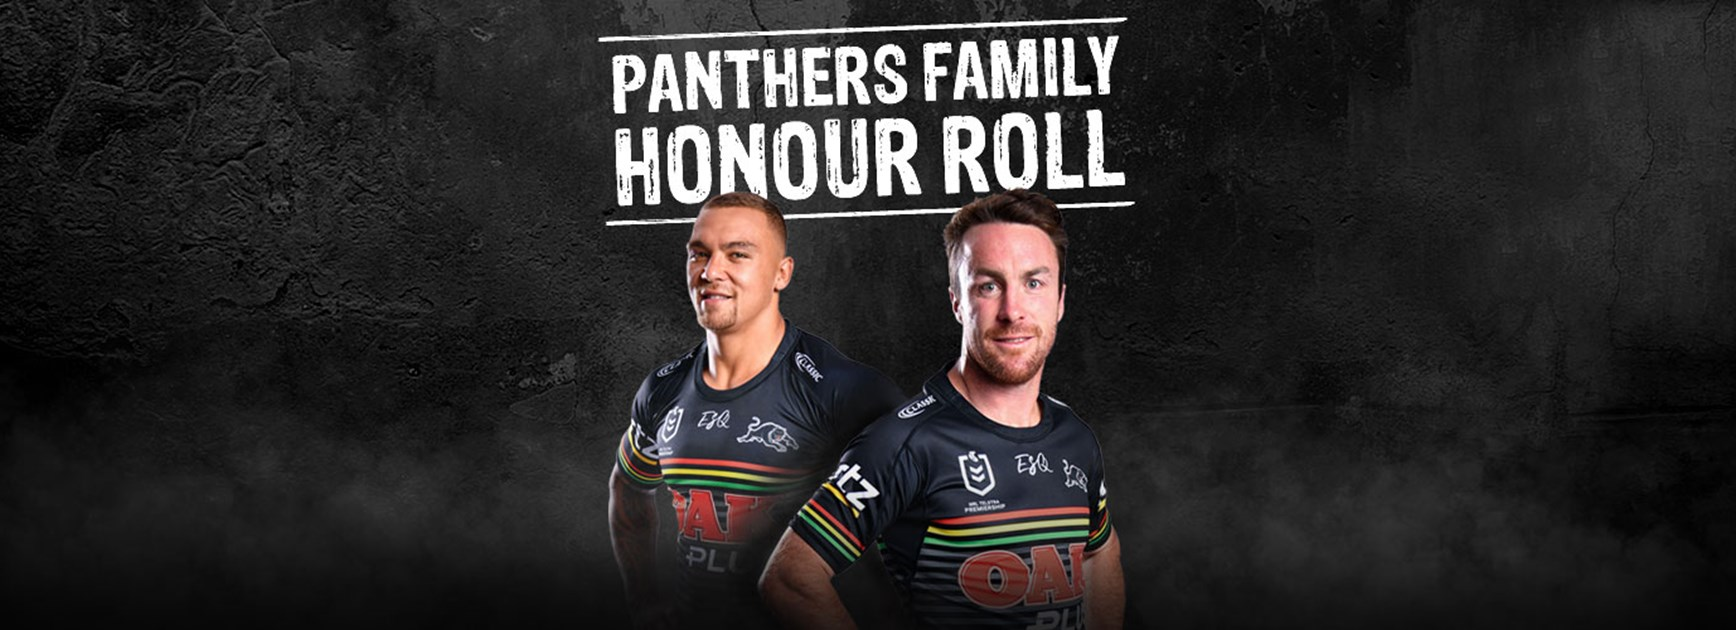 Panthers Family Honour Roll at Panthers Stadium